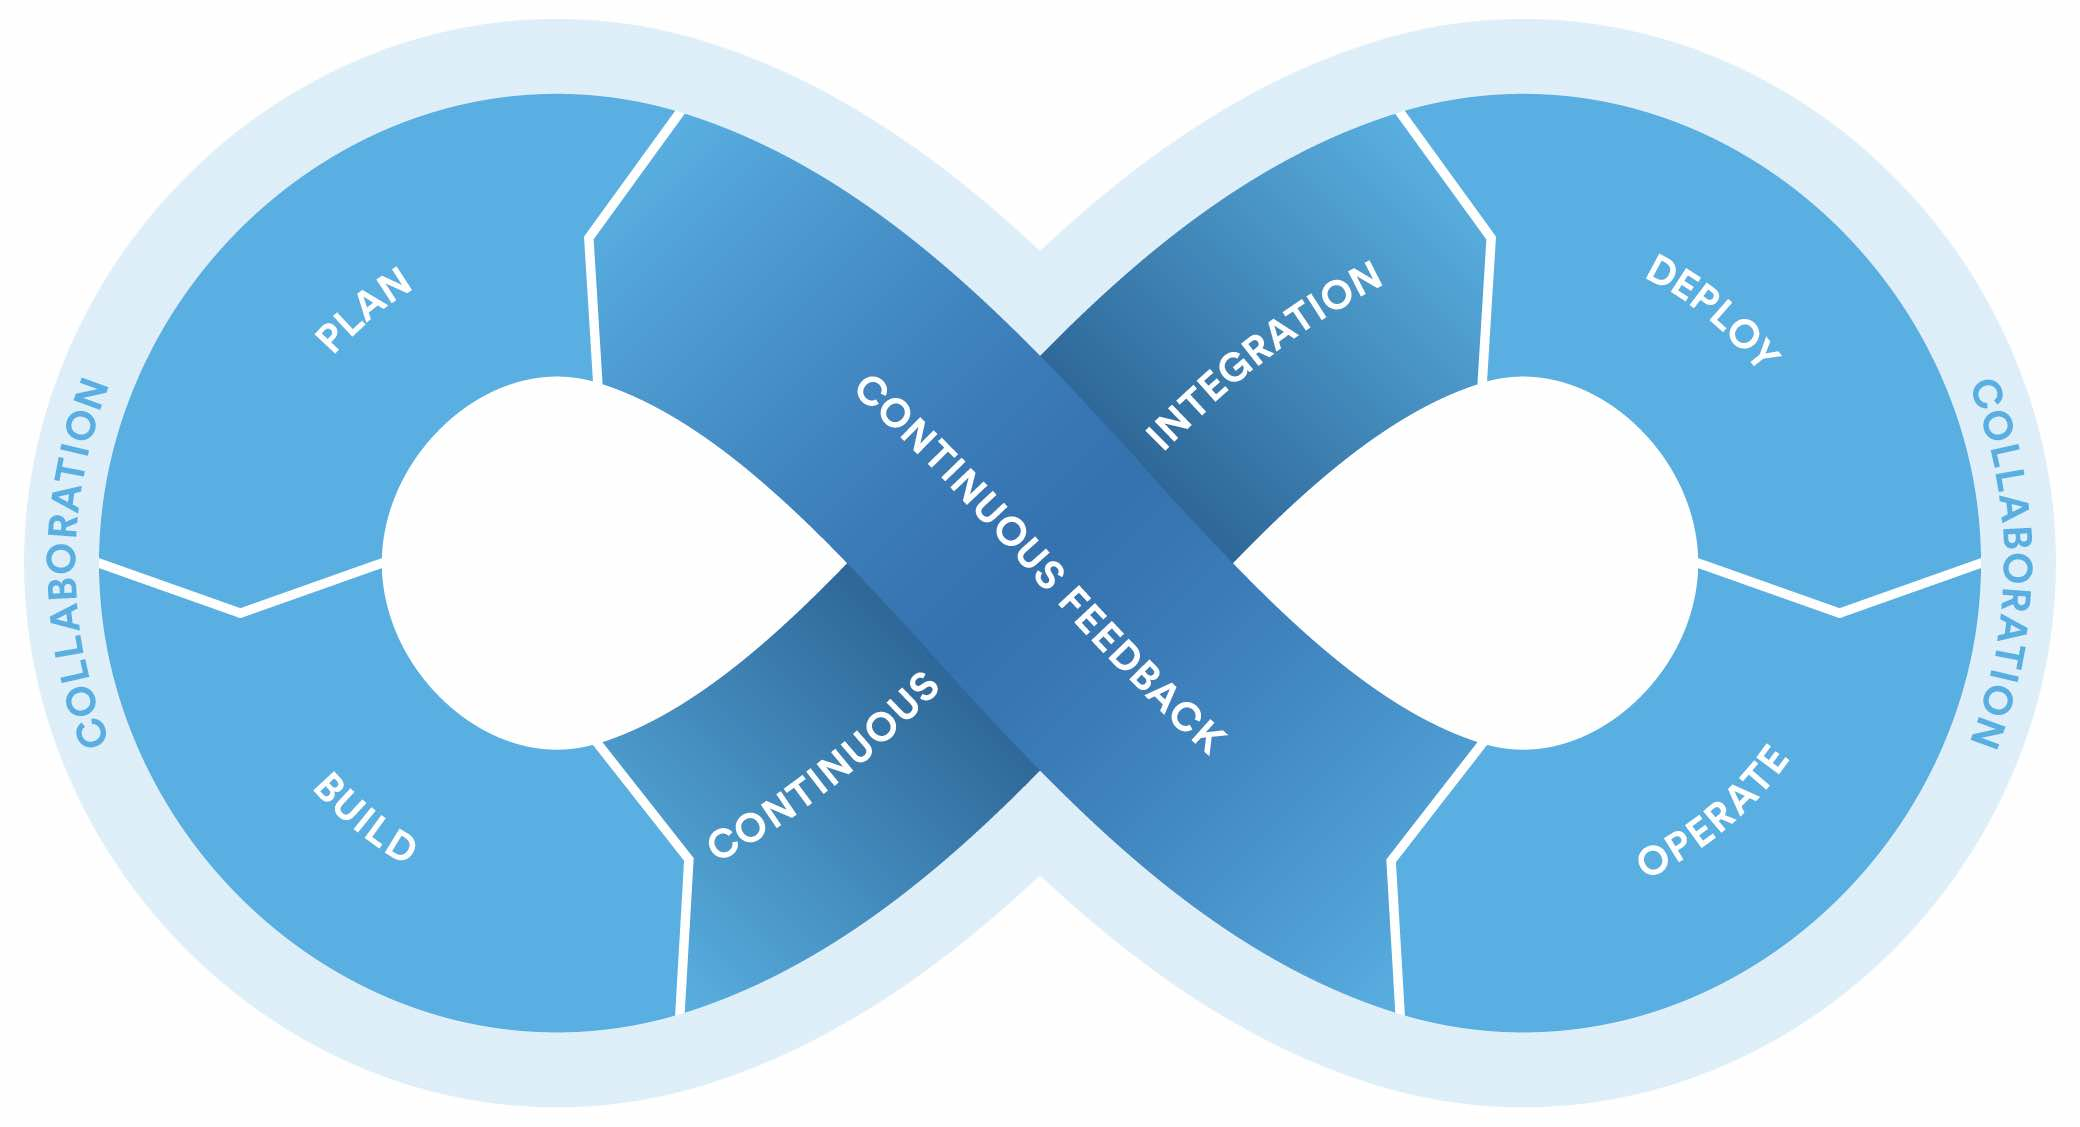 DevOps involves feedback loops and accelerate exchanges of information.